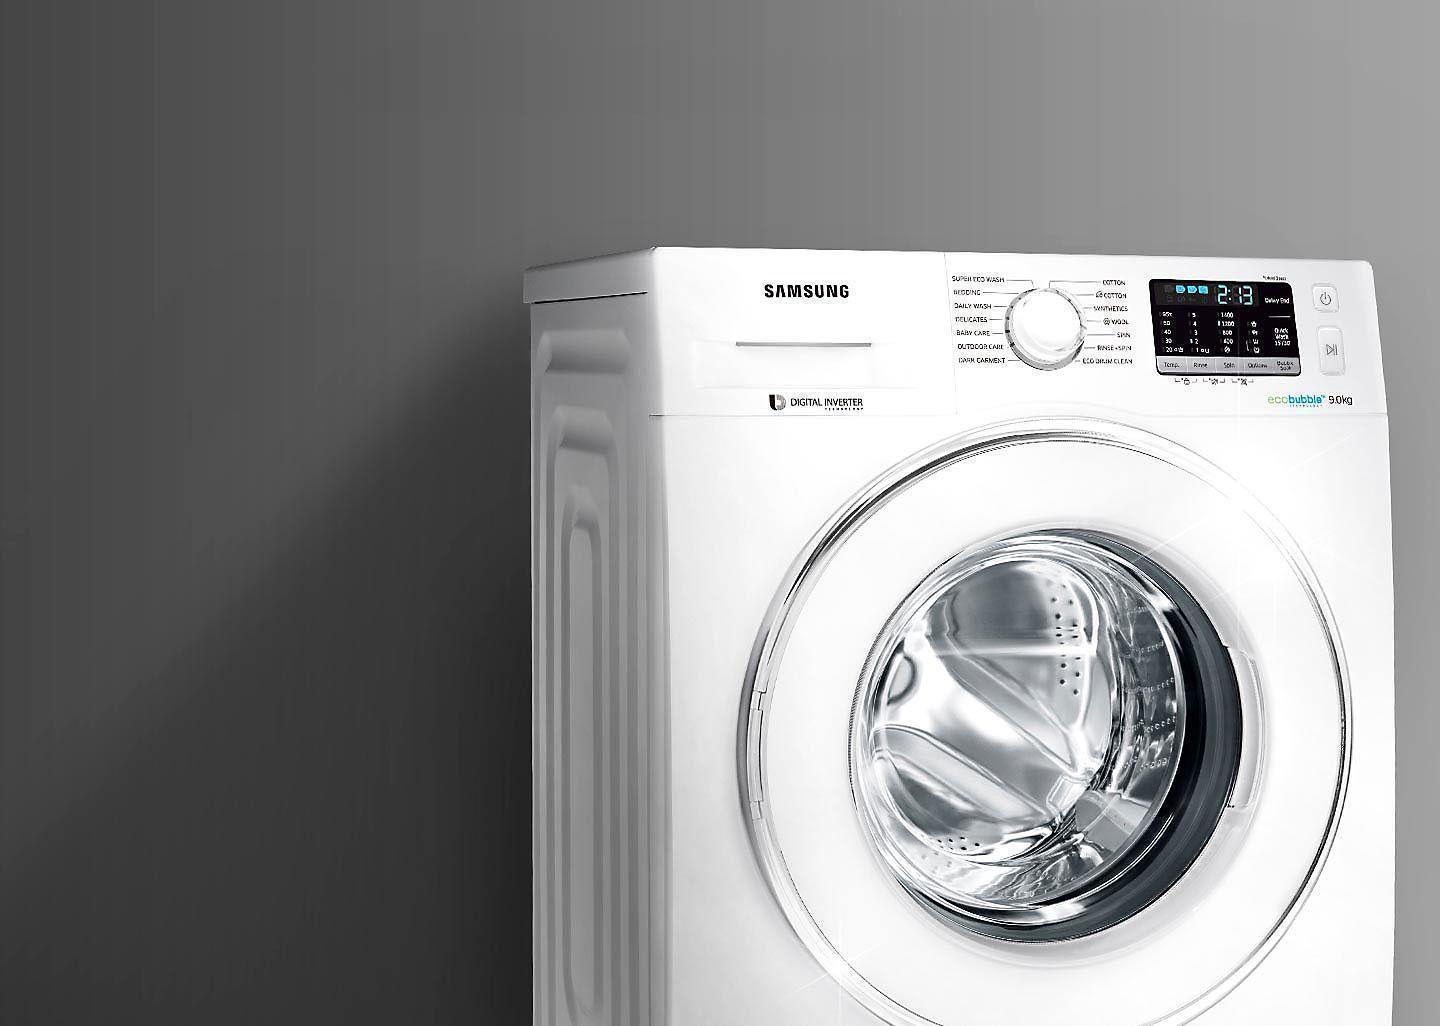 Washing machine with elegant design